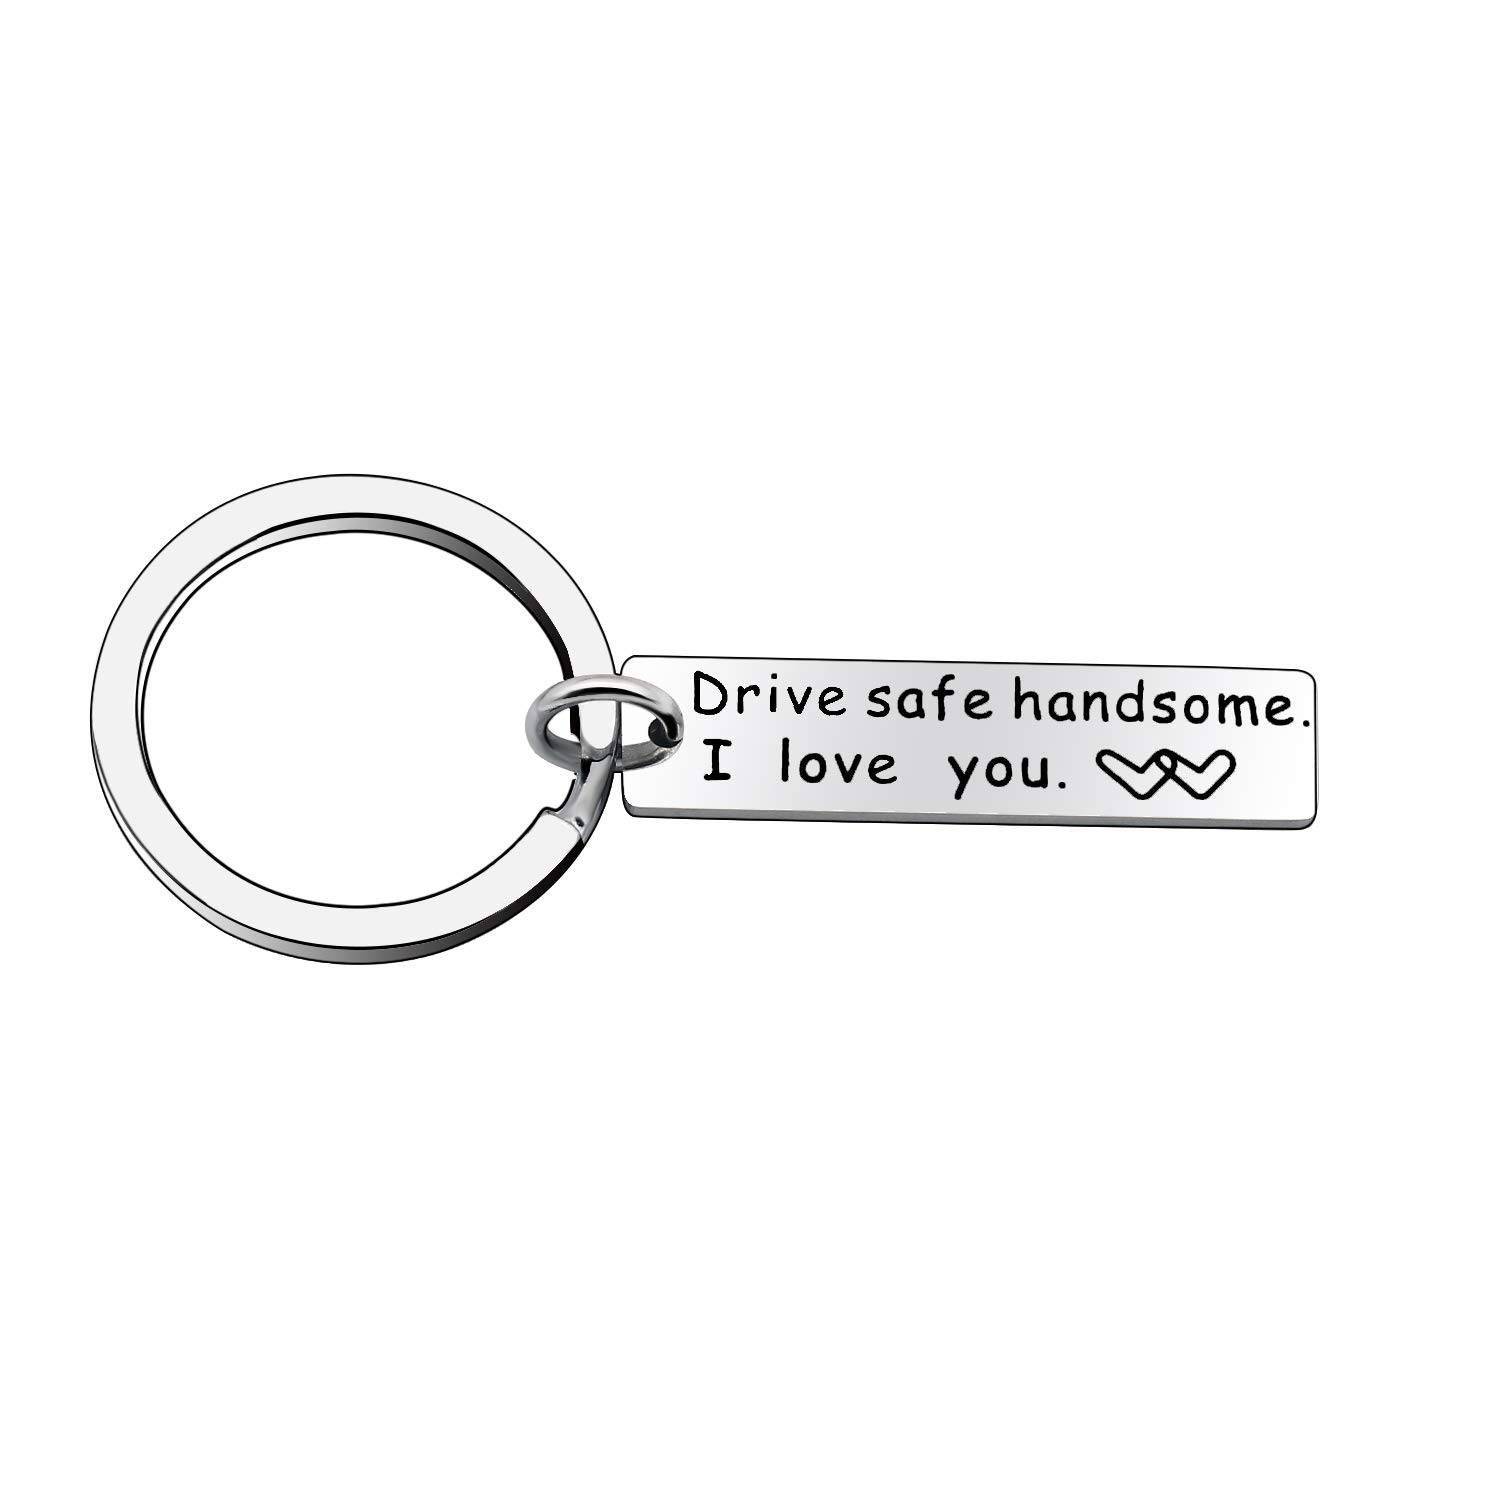 Drive Safe Handsome I Love You Car Keychain Key Chain for Family Couple Husband Wife Boyfriend Girlfriend Her Him Niceter